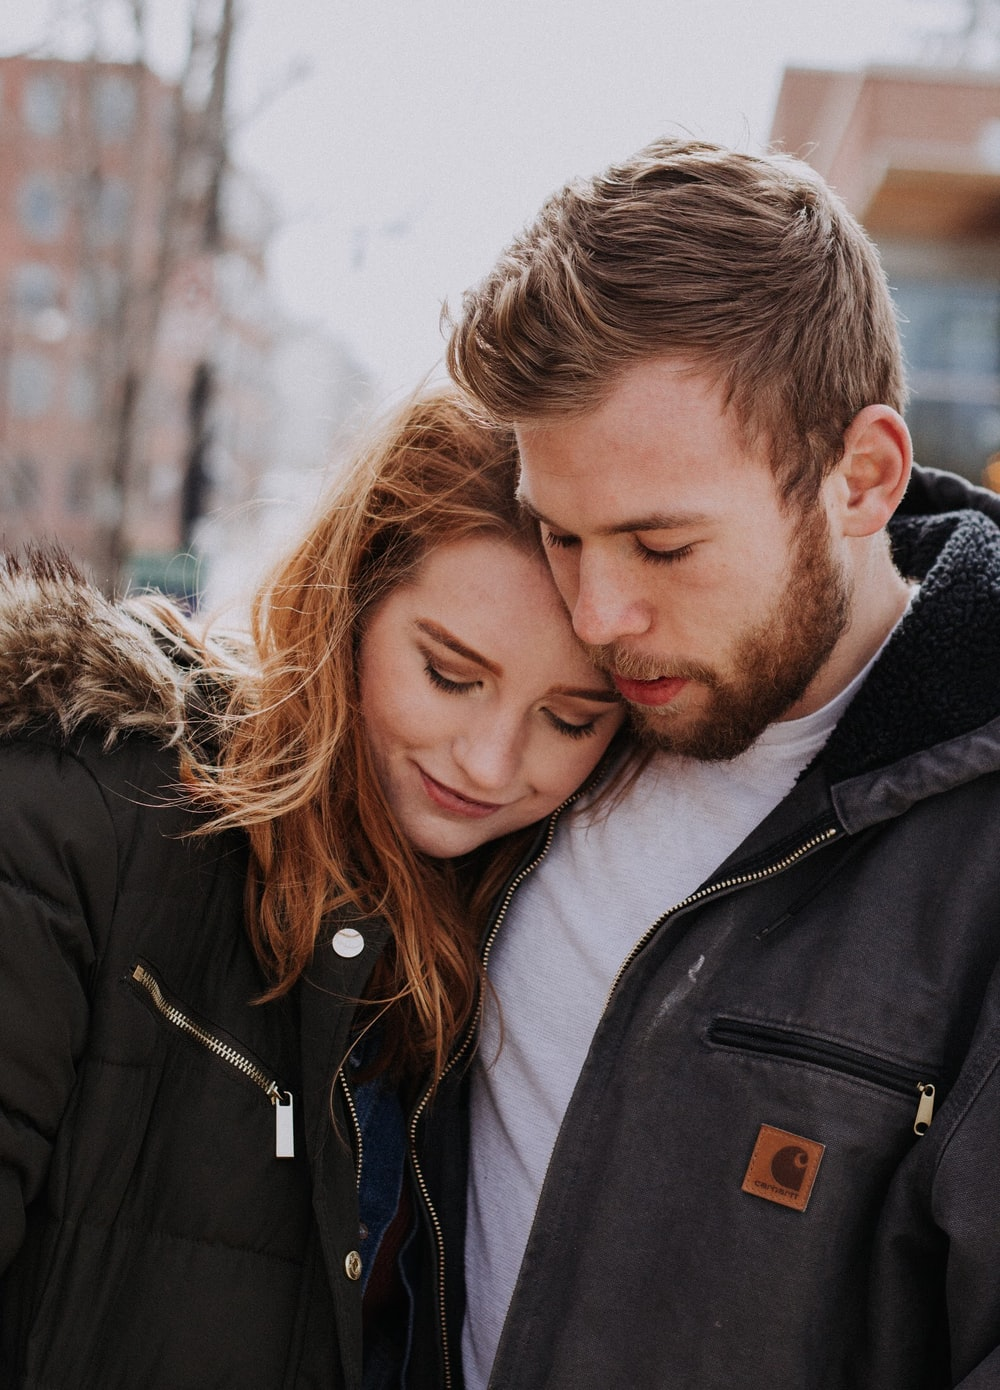 100 Cute Couple Pictures Download Free Images On Unsplash